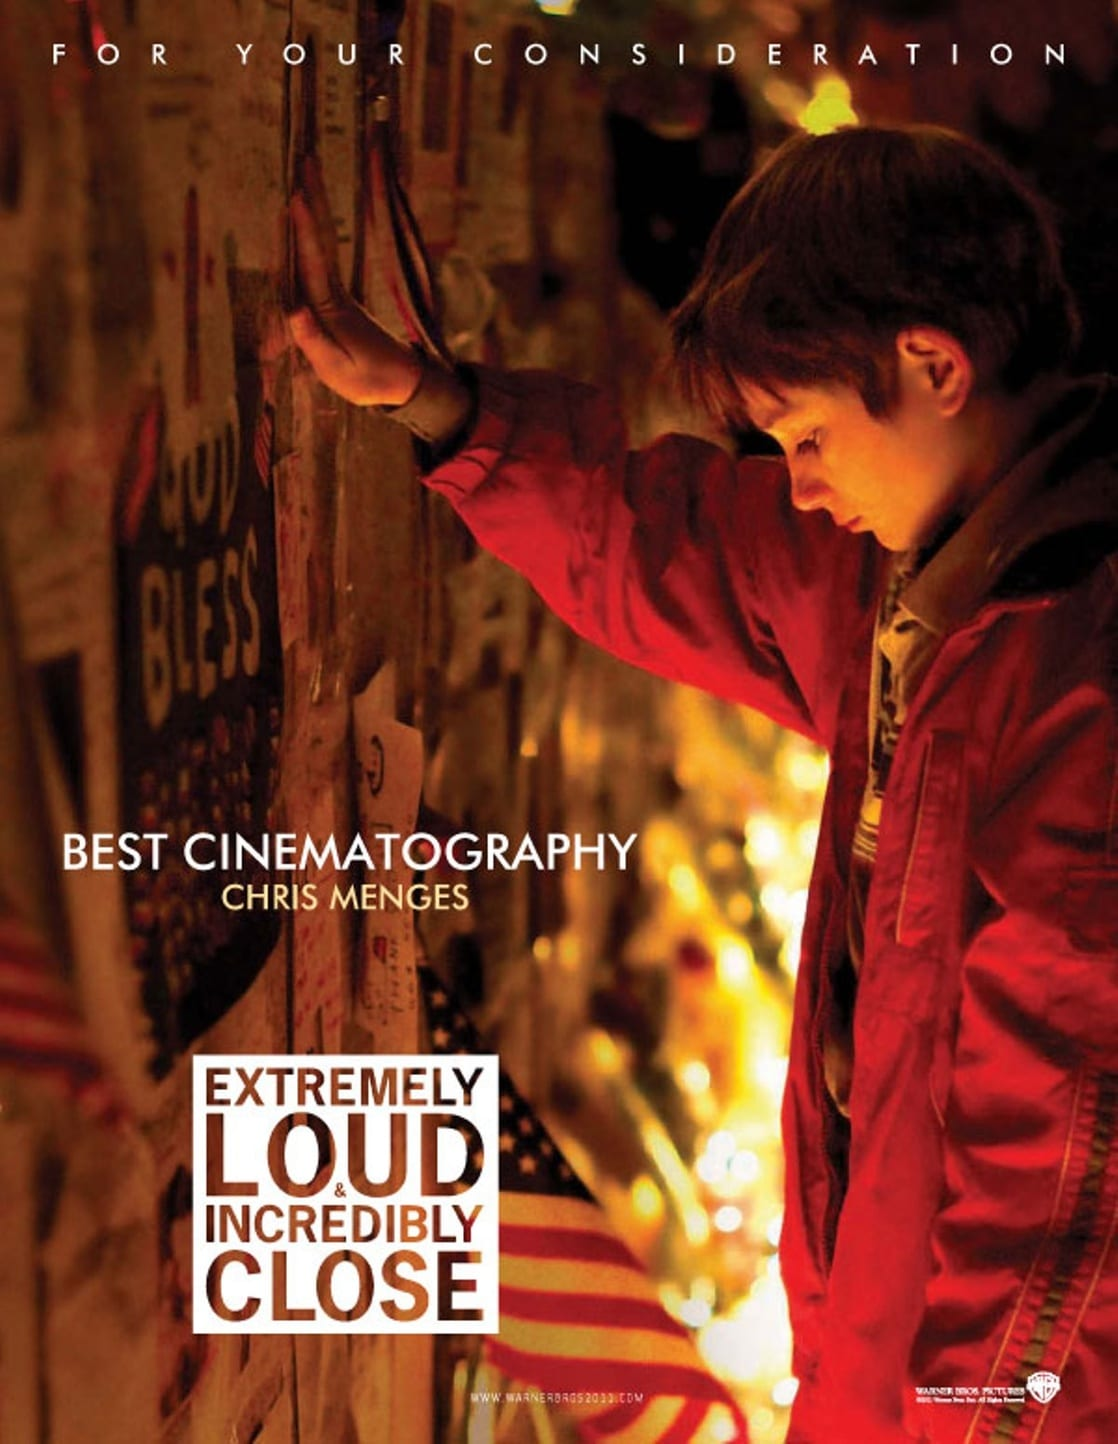 extremely loud incredibly close jonathan Character analysis, oskar schell, - tragedy in extremely loud and incredibly close by jonathan safran foer.